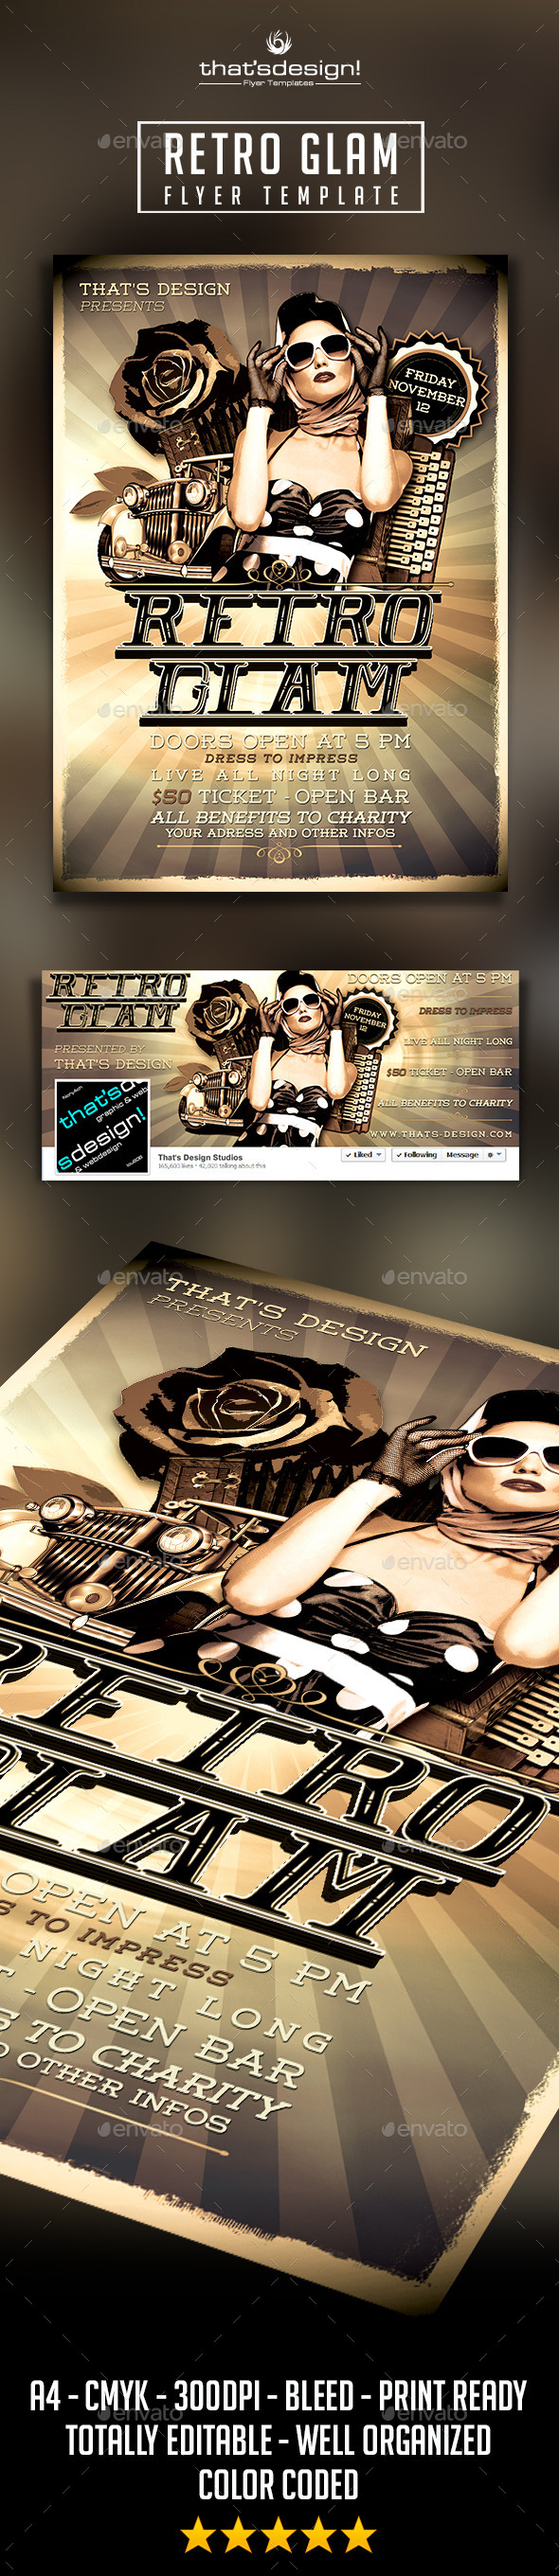 Retro Glam Flyer Template - Clubs & Parties Events